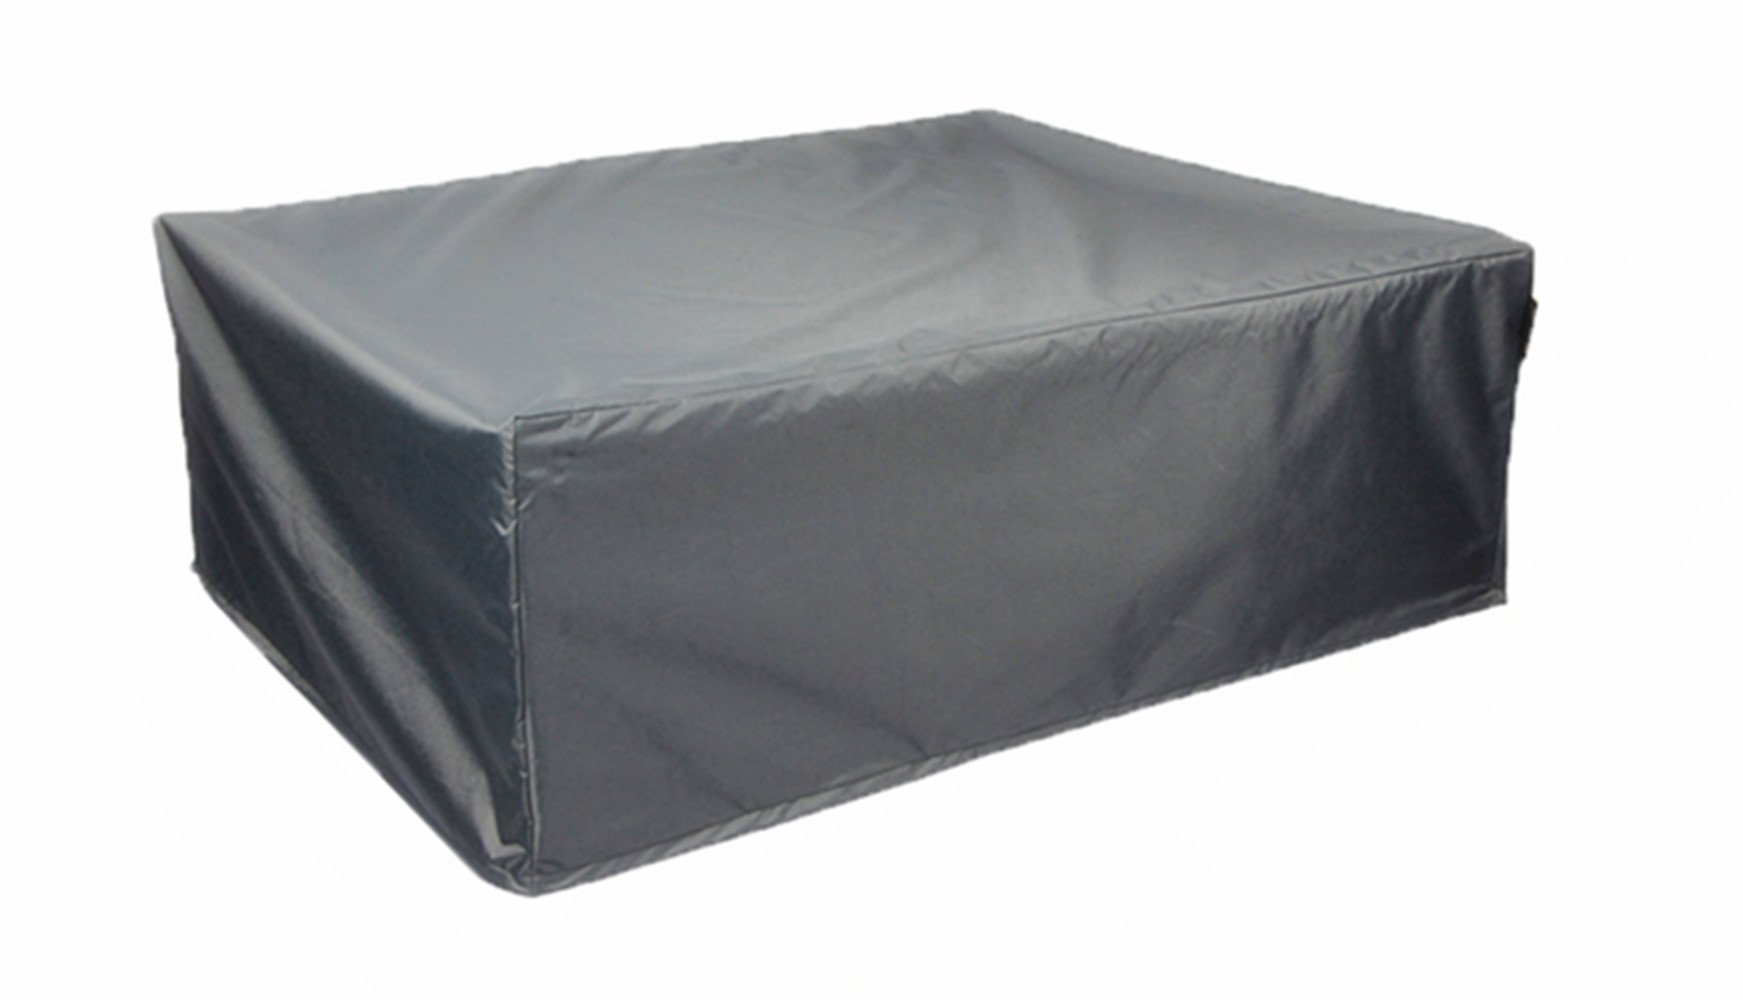 Hentex 6600 Outdoor Patio Rectangular/Oval(Sqaure) Table & Chair Set Cover,, Water Resistant, Breathable, Advanced 3 Layer Fabric(88''×58''×23'')